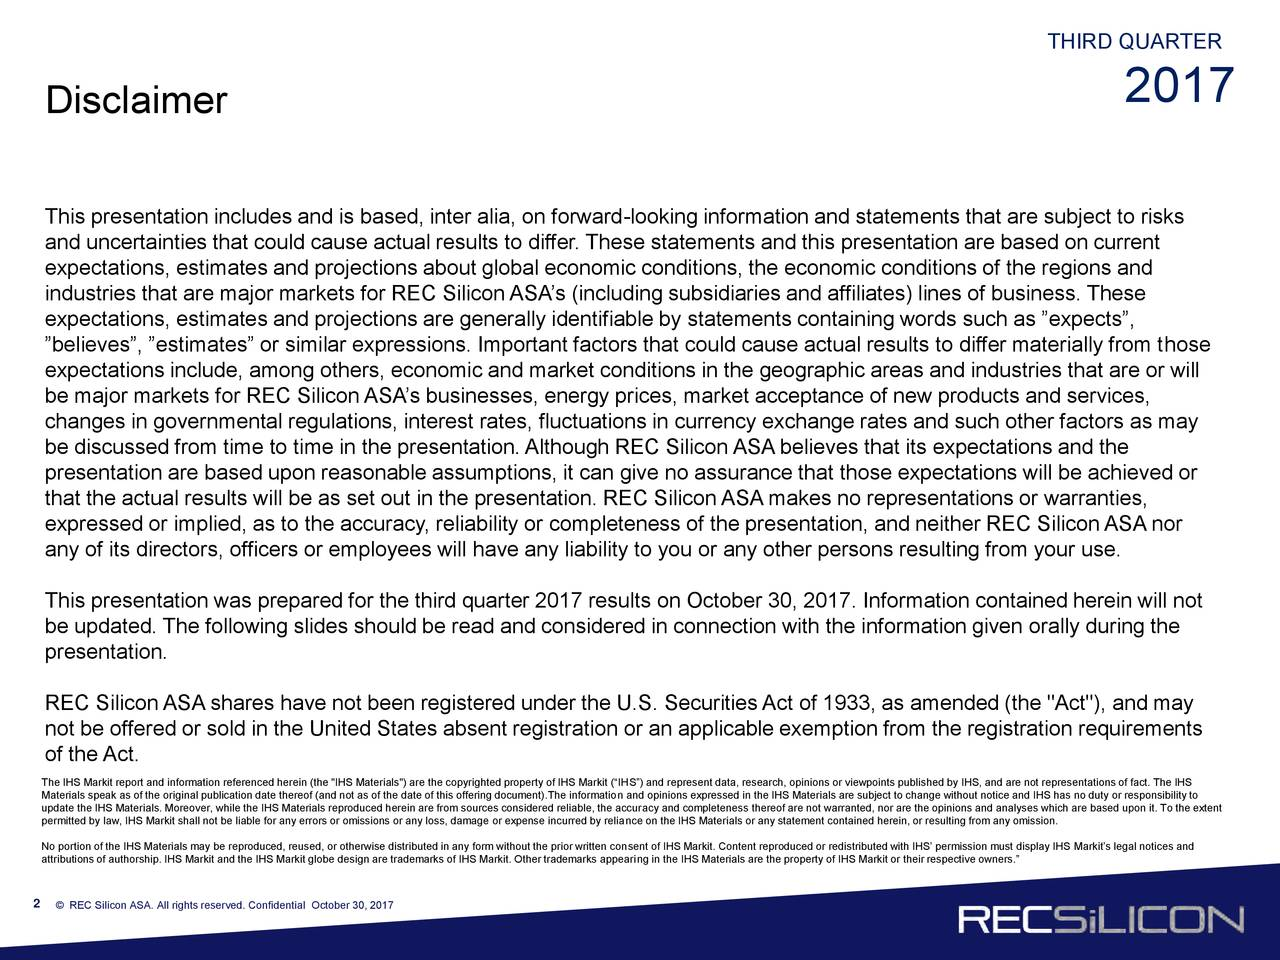 """2017 Disclaimer This presentation includes and is based, inter alia, on forward-looking information and statements that are subject to risks and uncertainties that could cause actual results to differ. These statements and this presentation are based on current expectations, estimates and projections about global economic conditions, the economic conditions of the regions and industries that are major markets for REC Silicon ASA's (including subsidiaries and affiliates) lines of business. These expectations, estimates and projections are generally identifiable by statements containing words such as """"expects"""", """"believes"""", """"estimates"""" or similar expressions. Important factors that could cause actual results to differ materially from those expectations include, among others, economic and market conditions in the geographic areas and industries that are or will be major markets for REC Silicon ASA's businesses, energy prices, market acceptance of new products and services, changes in governmental regulations, interest rates, fluctuations in currency exchange rates and such other factors as may be discussed from time to time in the presentation. Although REC Silicon ASA believes that its expectations and the presentation are based upon reasonable assumptions, it can give no assurance that those expectations will be achieved or that the actual results will be as set out in the presentation. REC Silicon ASA makes no representations or warranties, expressed or implied, as to the accuracy, reliability or completeness of the presentation, and neither REC Silicon ASA nor any of its directors, officers or employees will have any liability to you or any other persons resulting from your use. This presentation was prepared for the third quarter 2017 results on October 30, 2017. Information contained herein will not be updated. The following slides should be read and considered in connection with the information given orally during the presentation. REC Silicon ASA shares have not"""